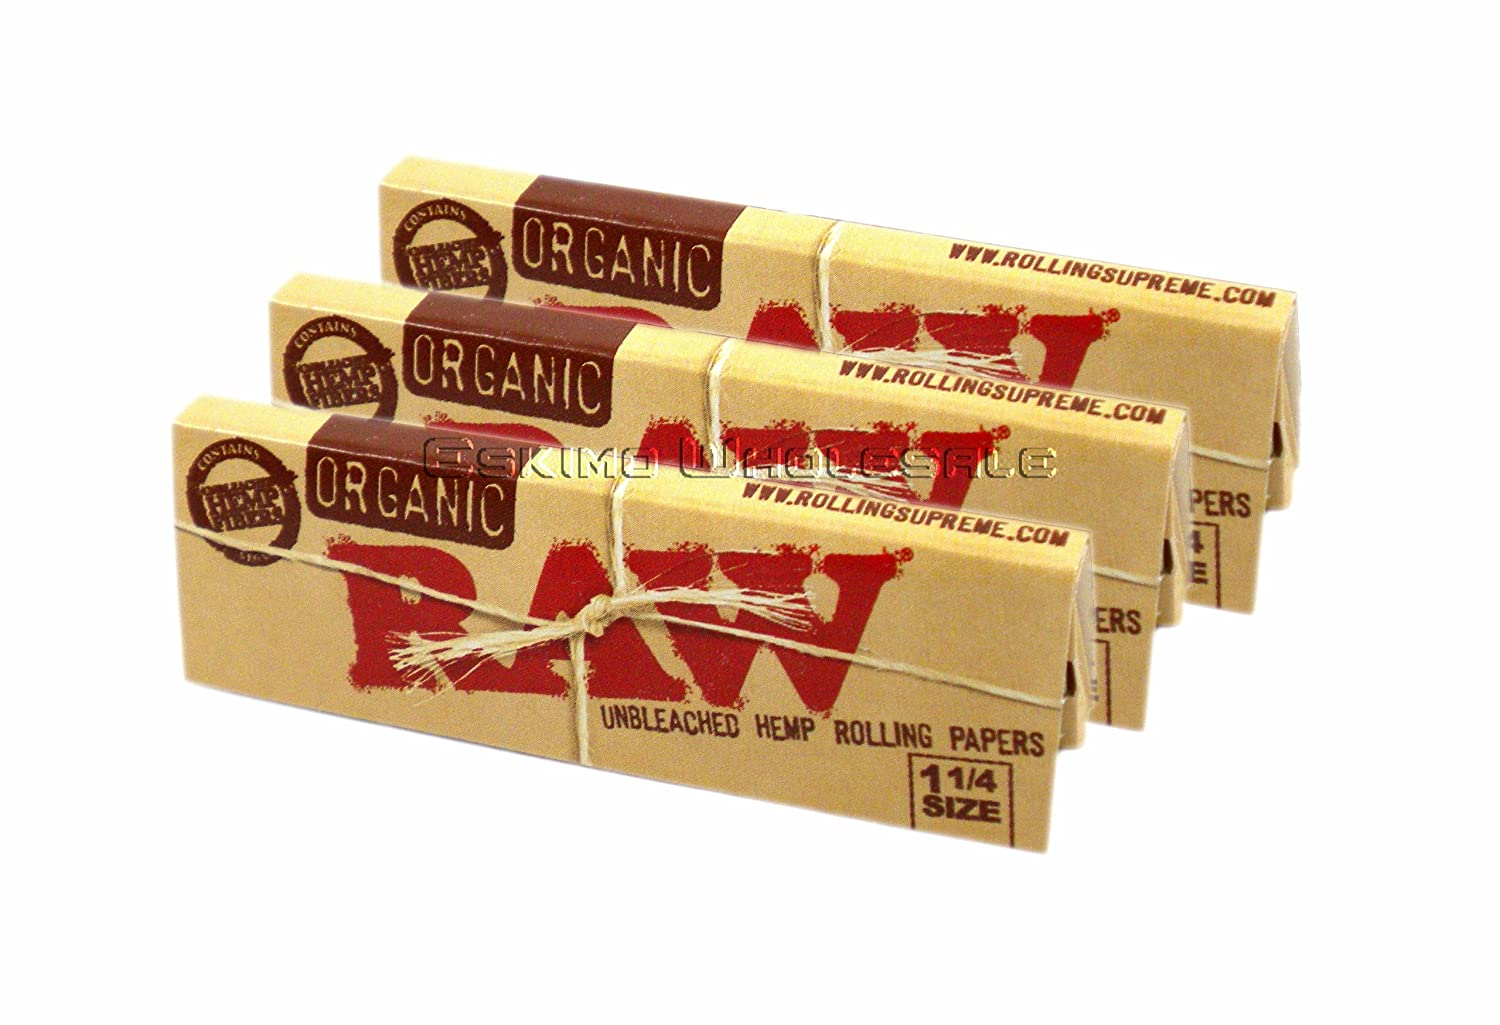 RAW Organic Unbleached HEMP 1¼ Rolling Papers 3 Pack [Health and Beauty] Quality Deals No Model